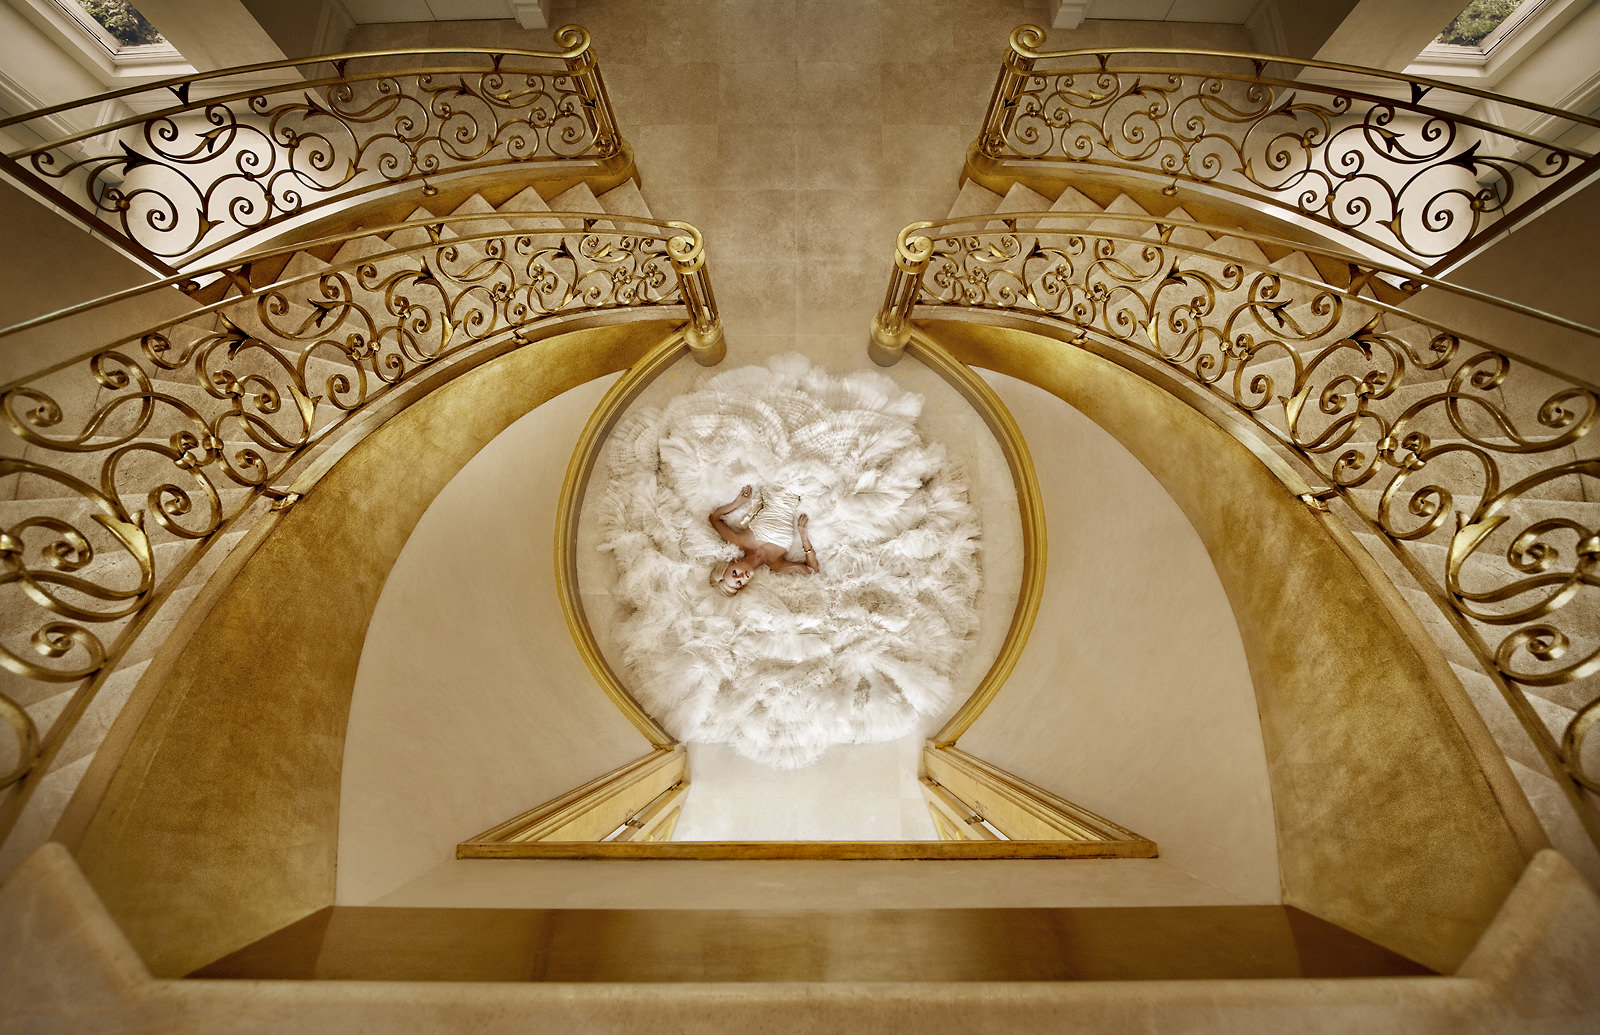 Bridal dress at the bottom of golden staircase